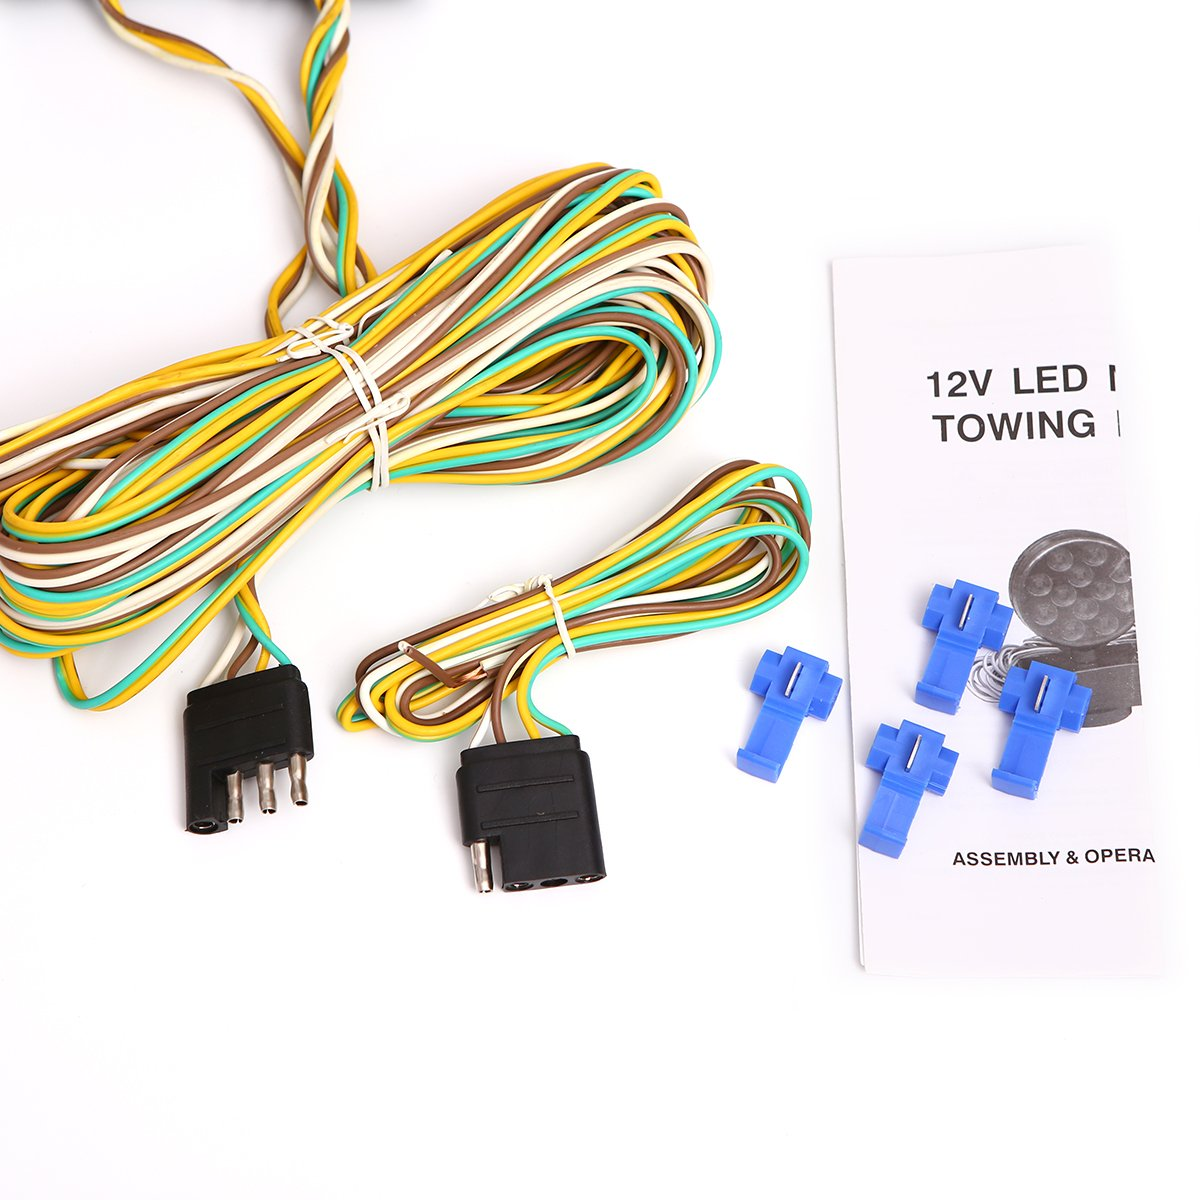 Czc Auto 12v Led Magnetic Towing Light Kit For Boat Trailer Rv Truck Wiring To Strength 55 Pounds 101018nj